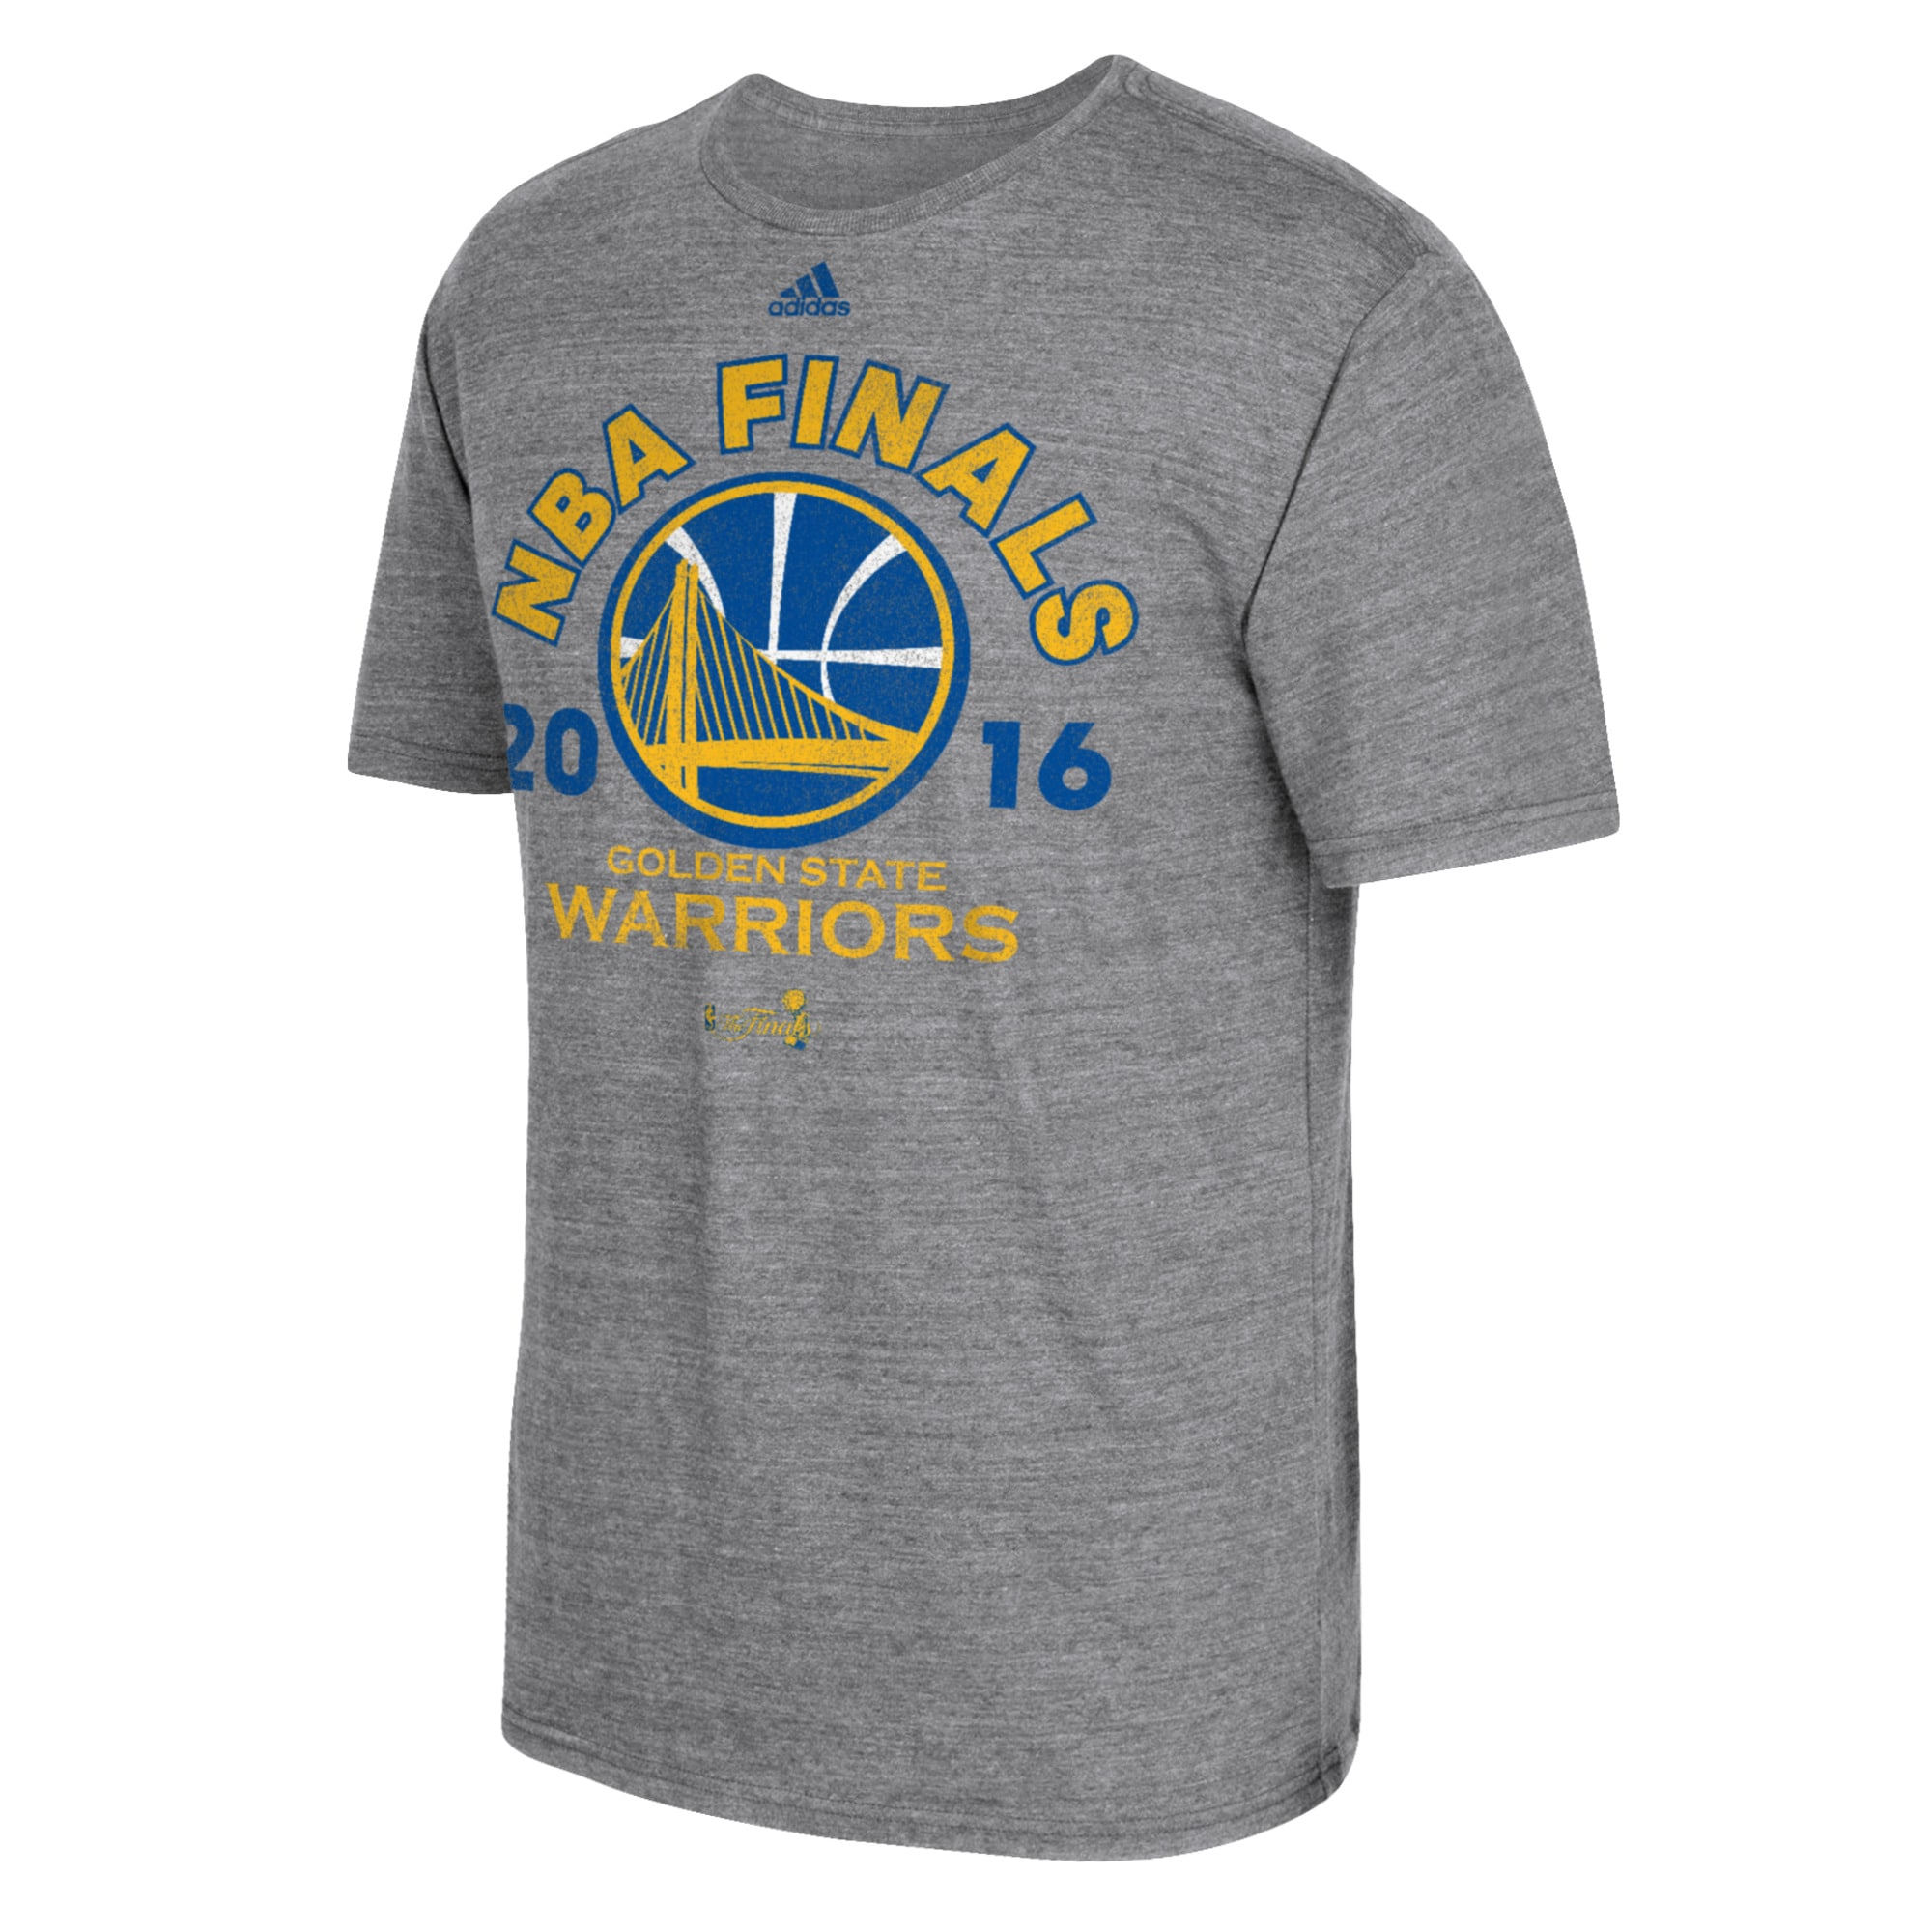 Golden State Warriors adidas 2016 NBA Finals Bound Tri-Blend T-Shirt - Gray